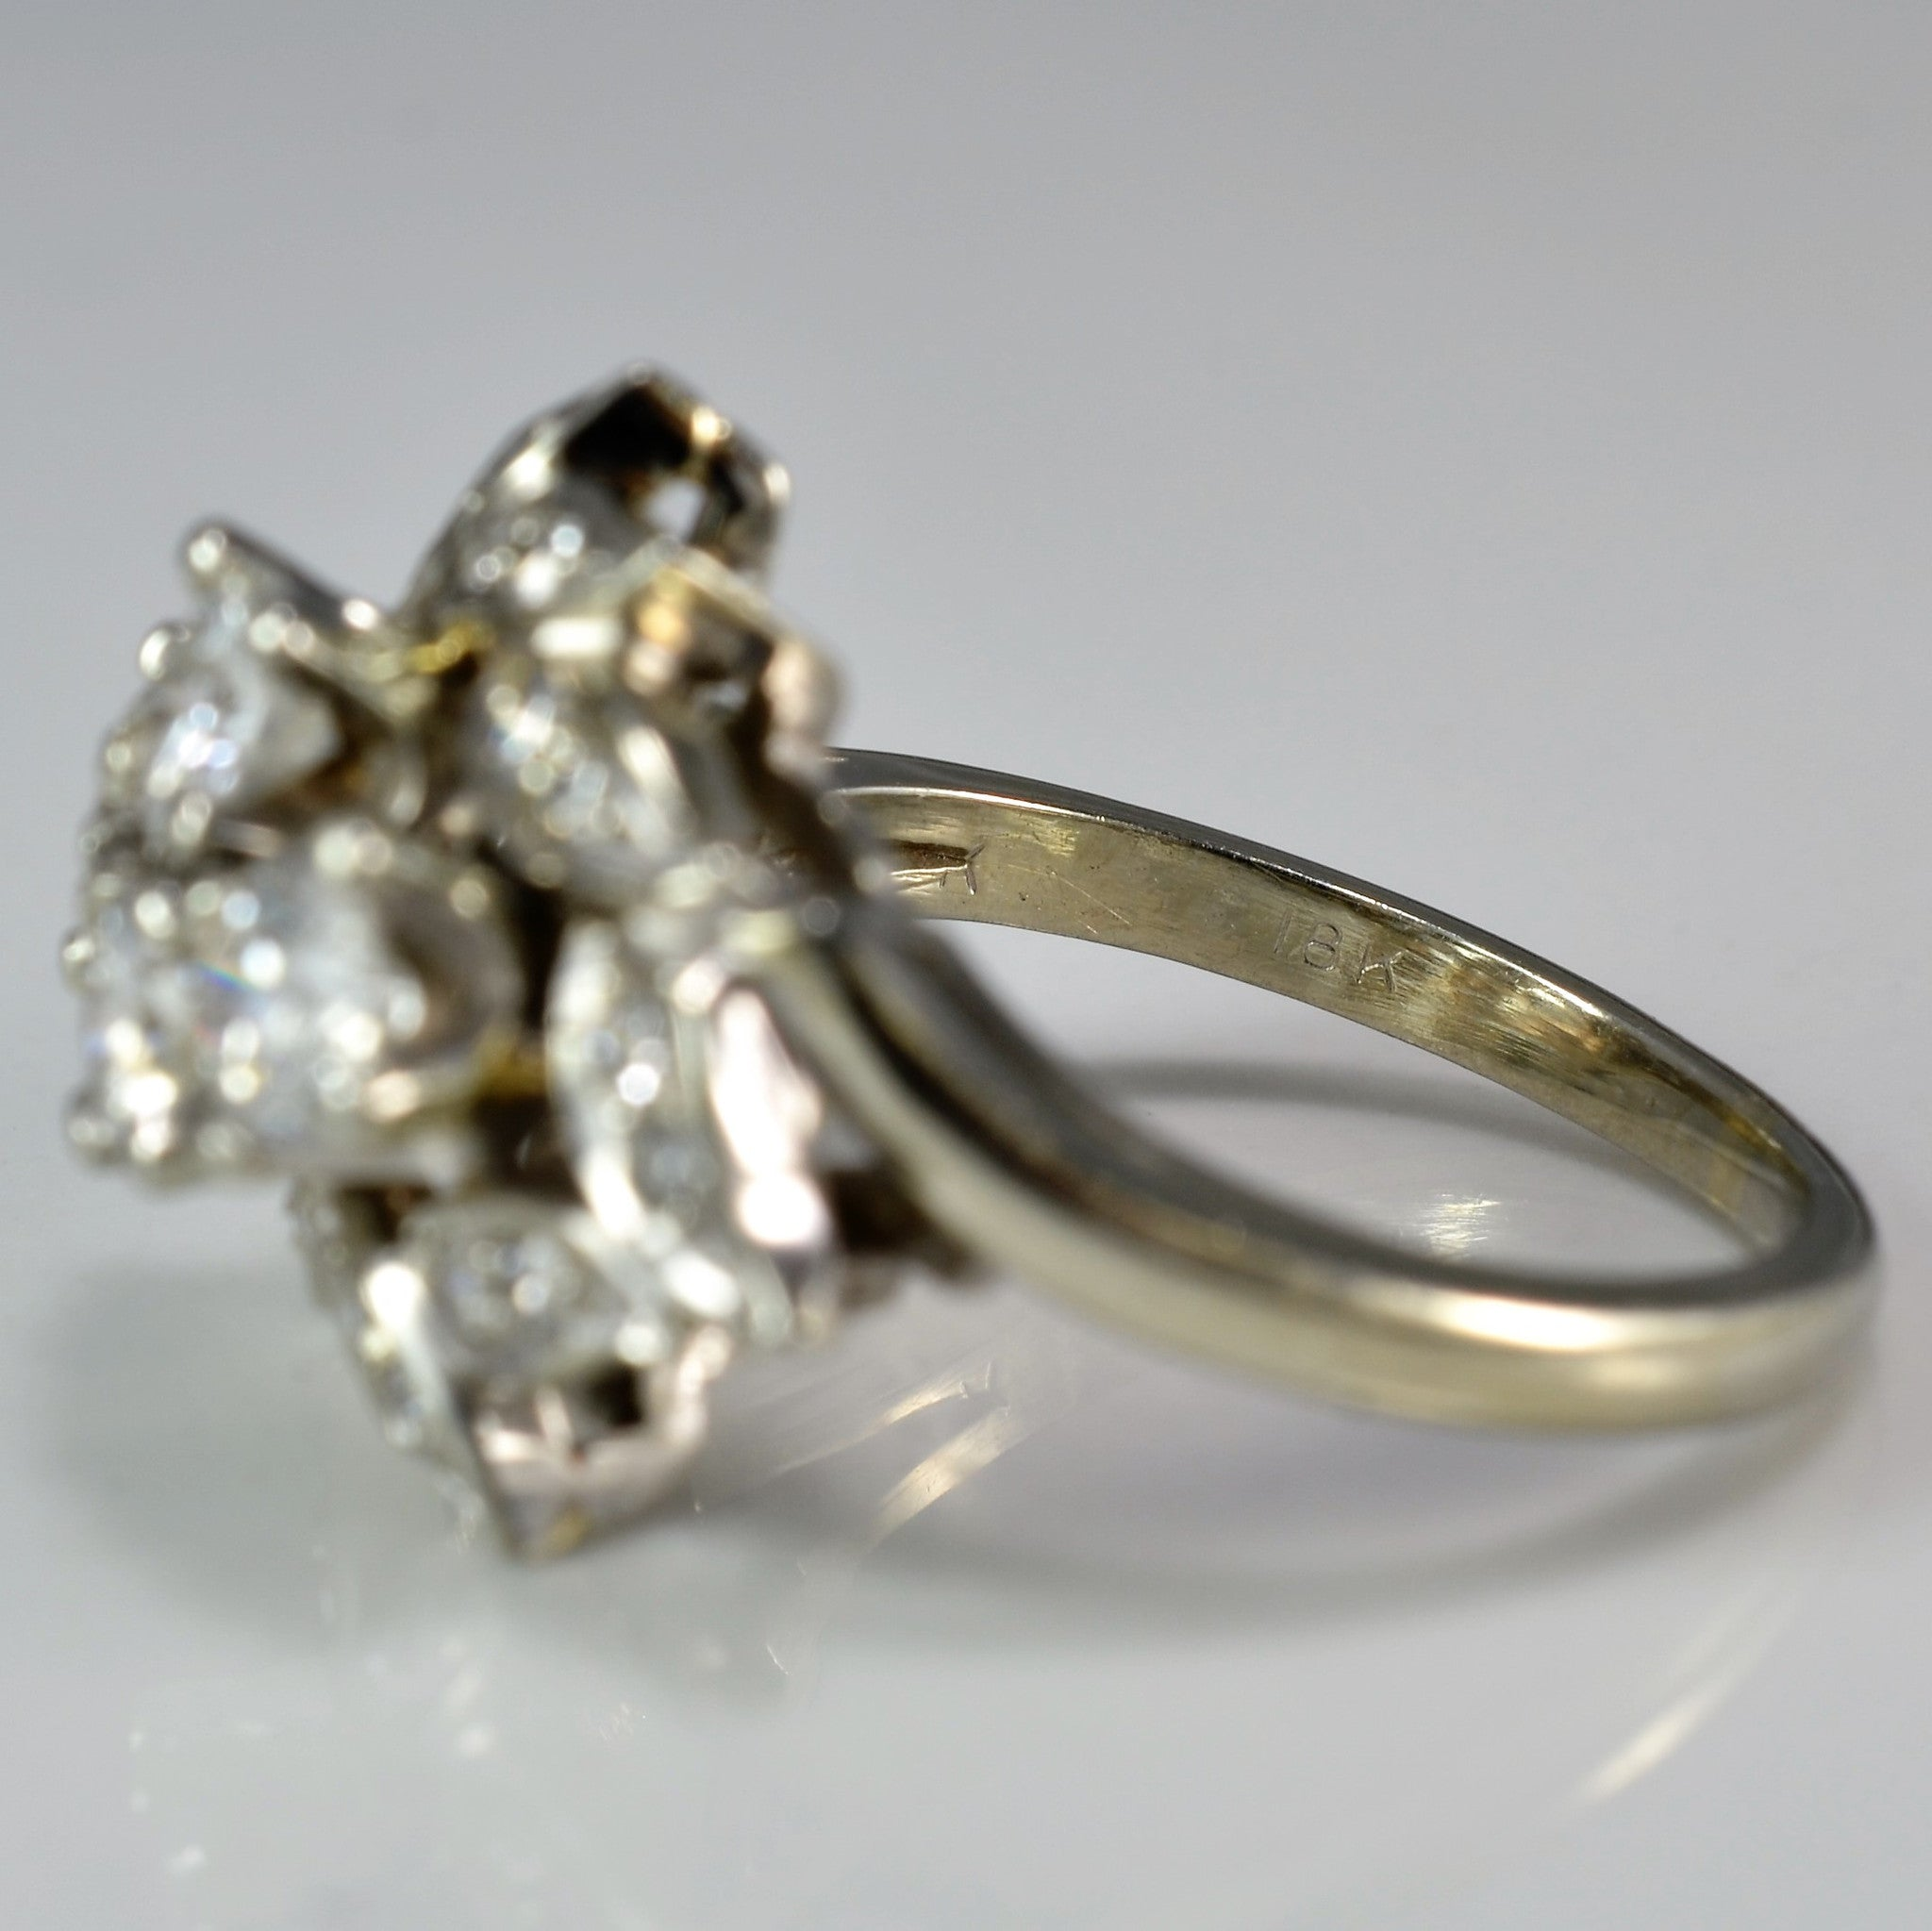 Floral Motif Diamond Cocktail Ring | 0.78 ctw, SZ 5 |